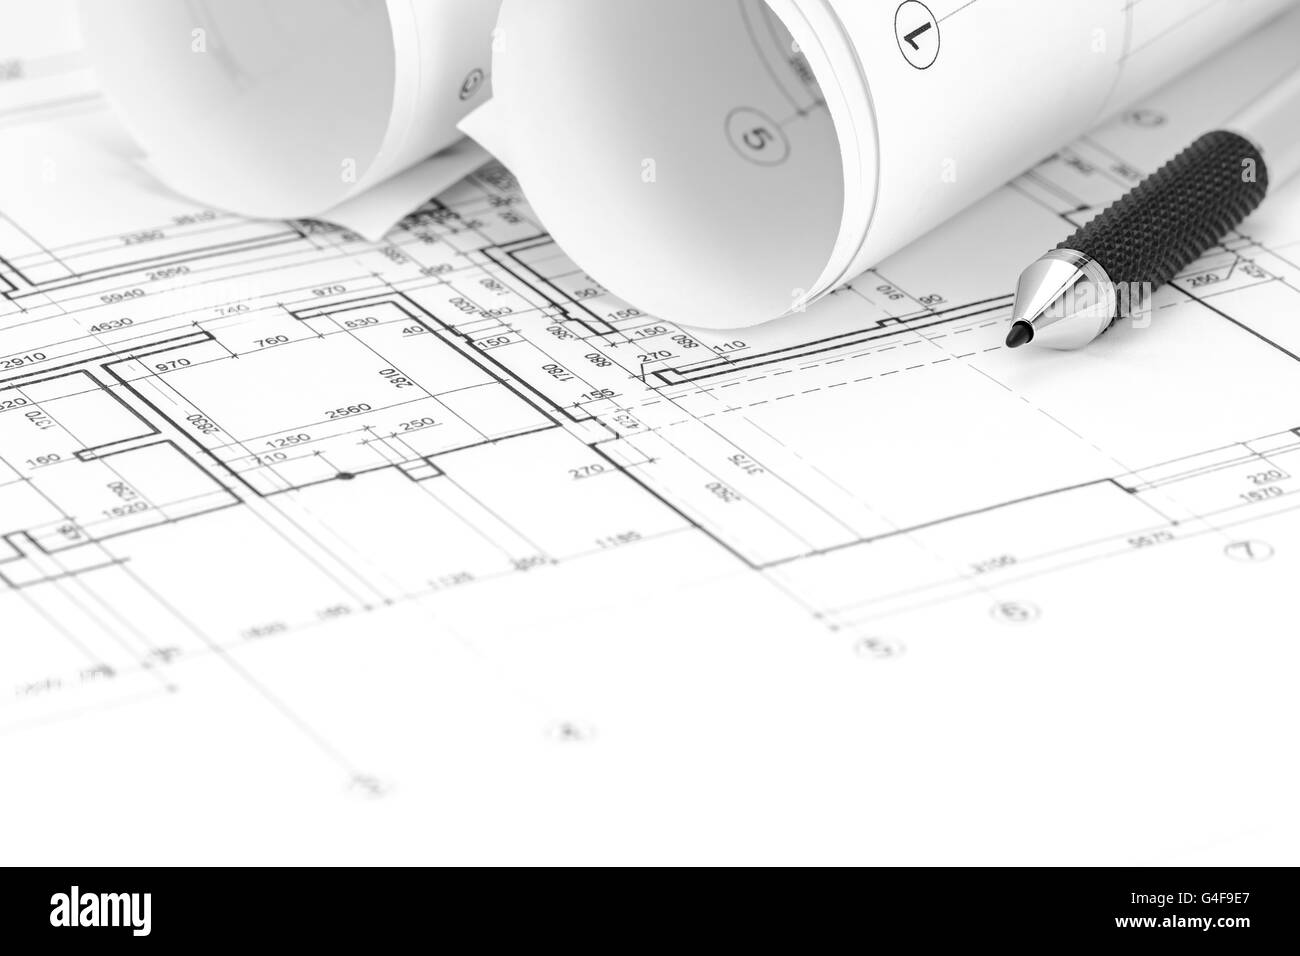 Architect workspace with floor plan blueprint roll and pencil stock architect workspace with floor plan blueprint roll and pencil malvernweather Choice Image